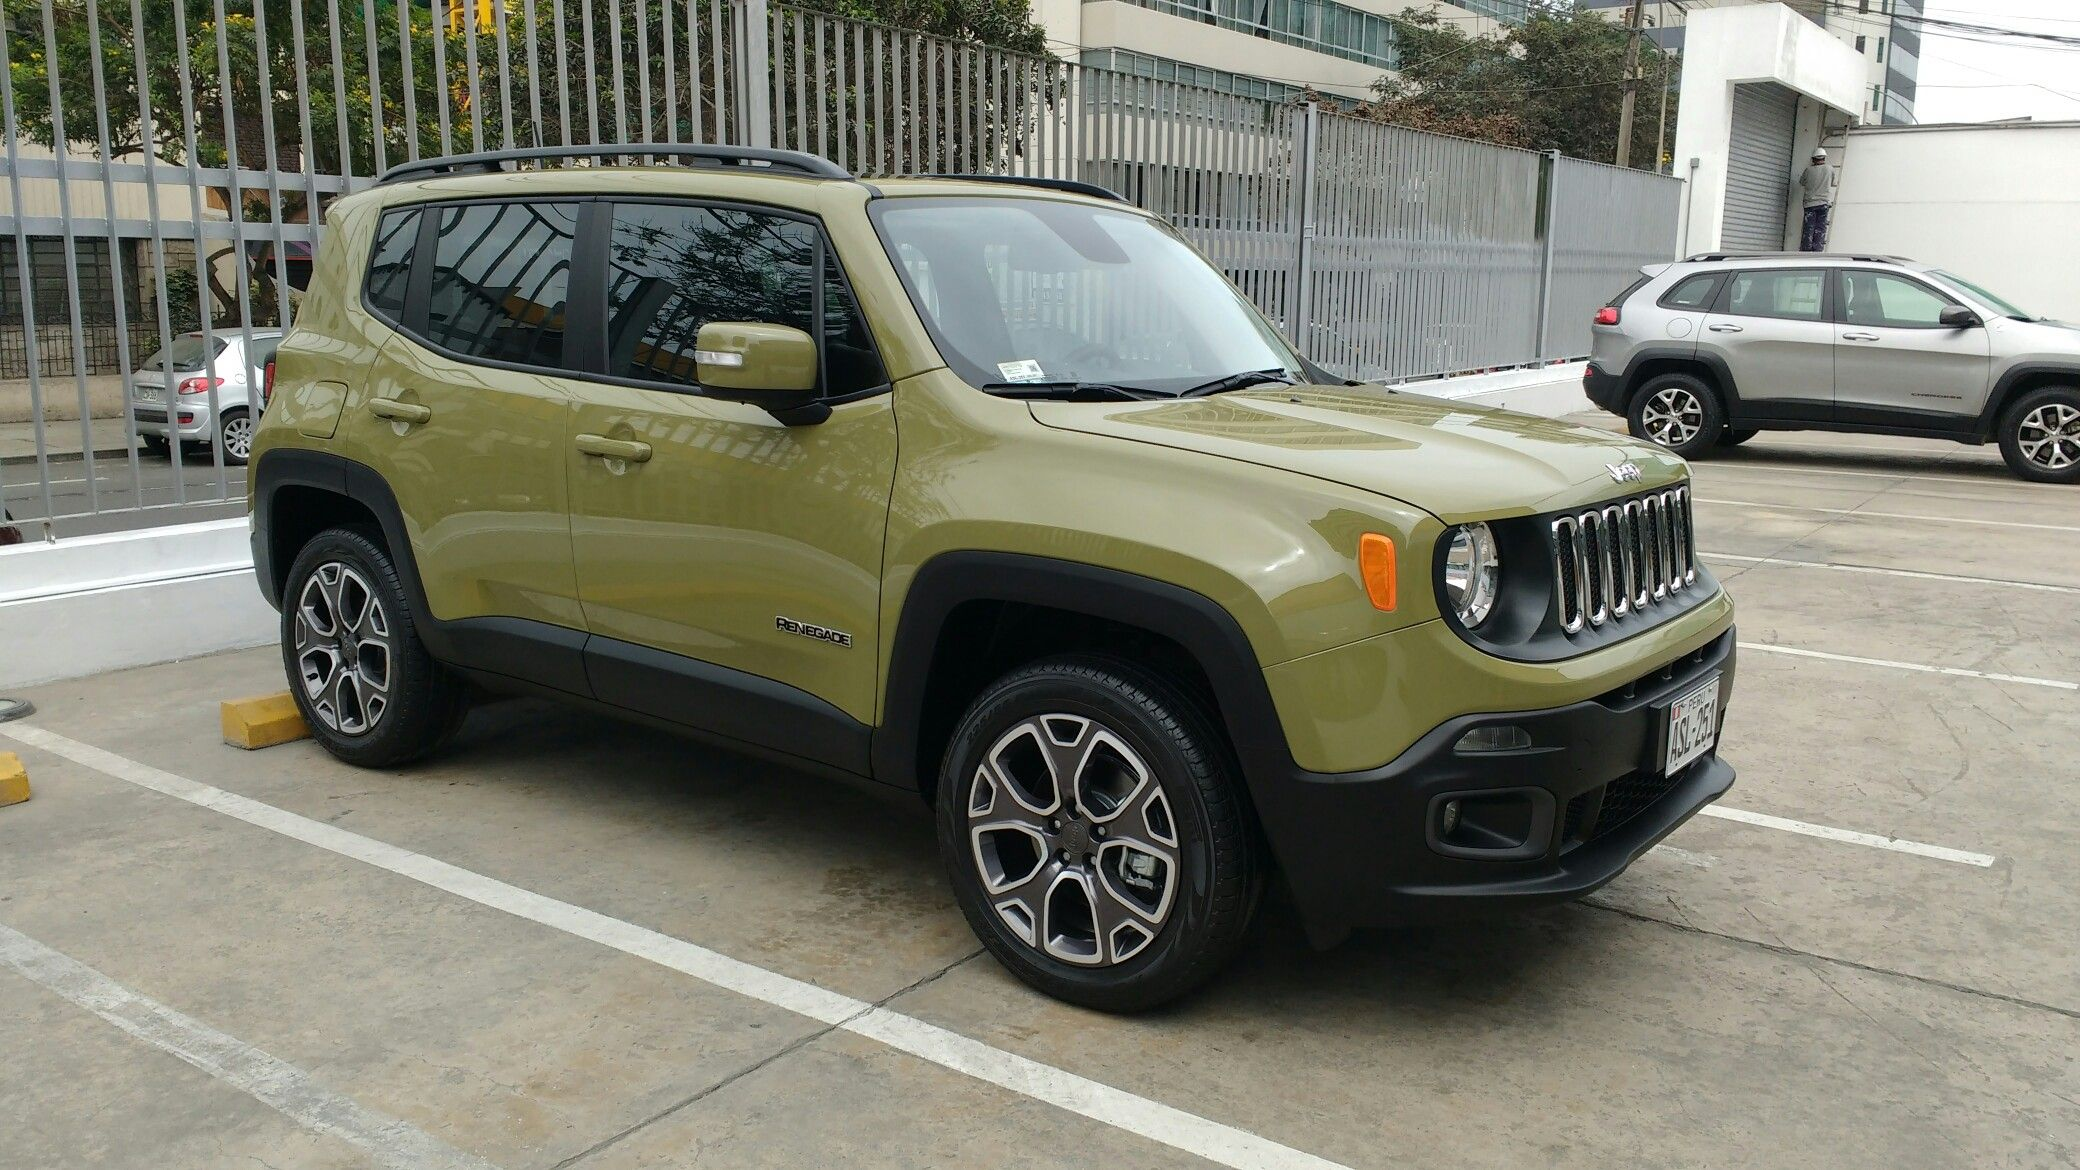 100 Tan Jeep Renegade First Drive 2015 Jeep Renegade Jeep Renegade Jeeps And Cars Jeep